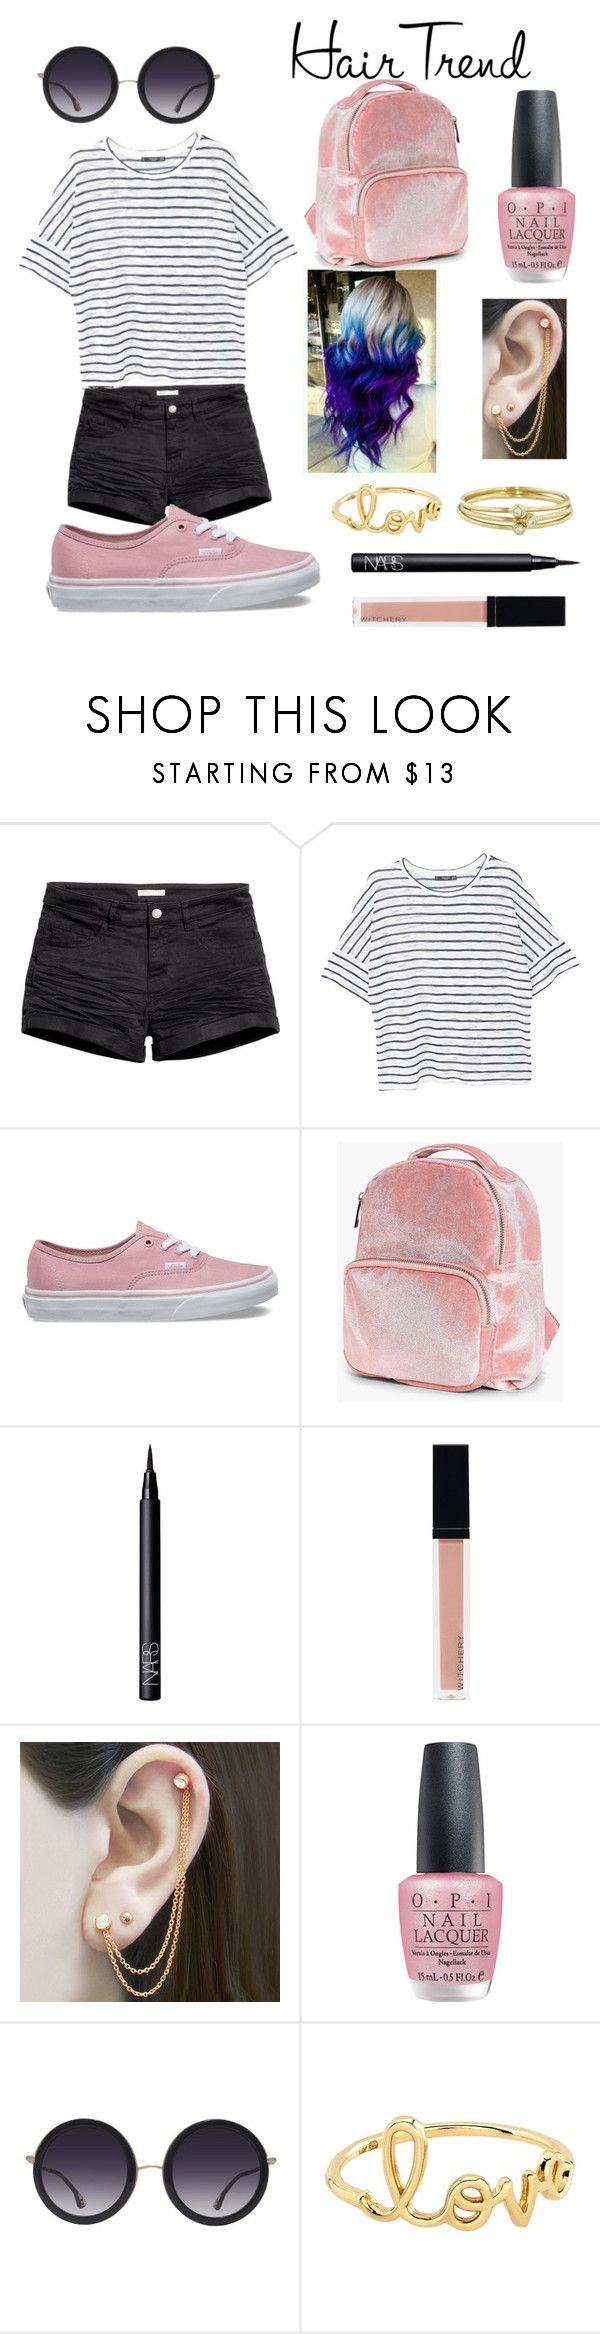 """Hair Trend"" by lexisnotcool ❤ liked on Polyvore featuring beauty, H&M, MANGO, Vans, Boohoo, NARS Cosmetics, Witchery, Embers Gemstone Jewellery, OPI and Alice + Olivia"